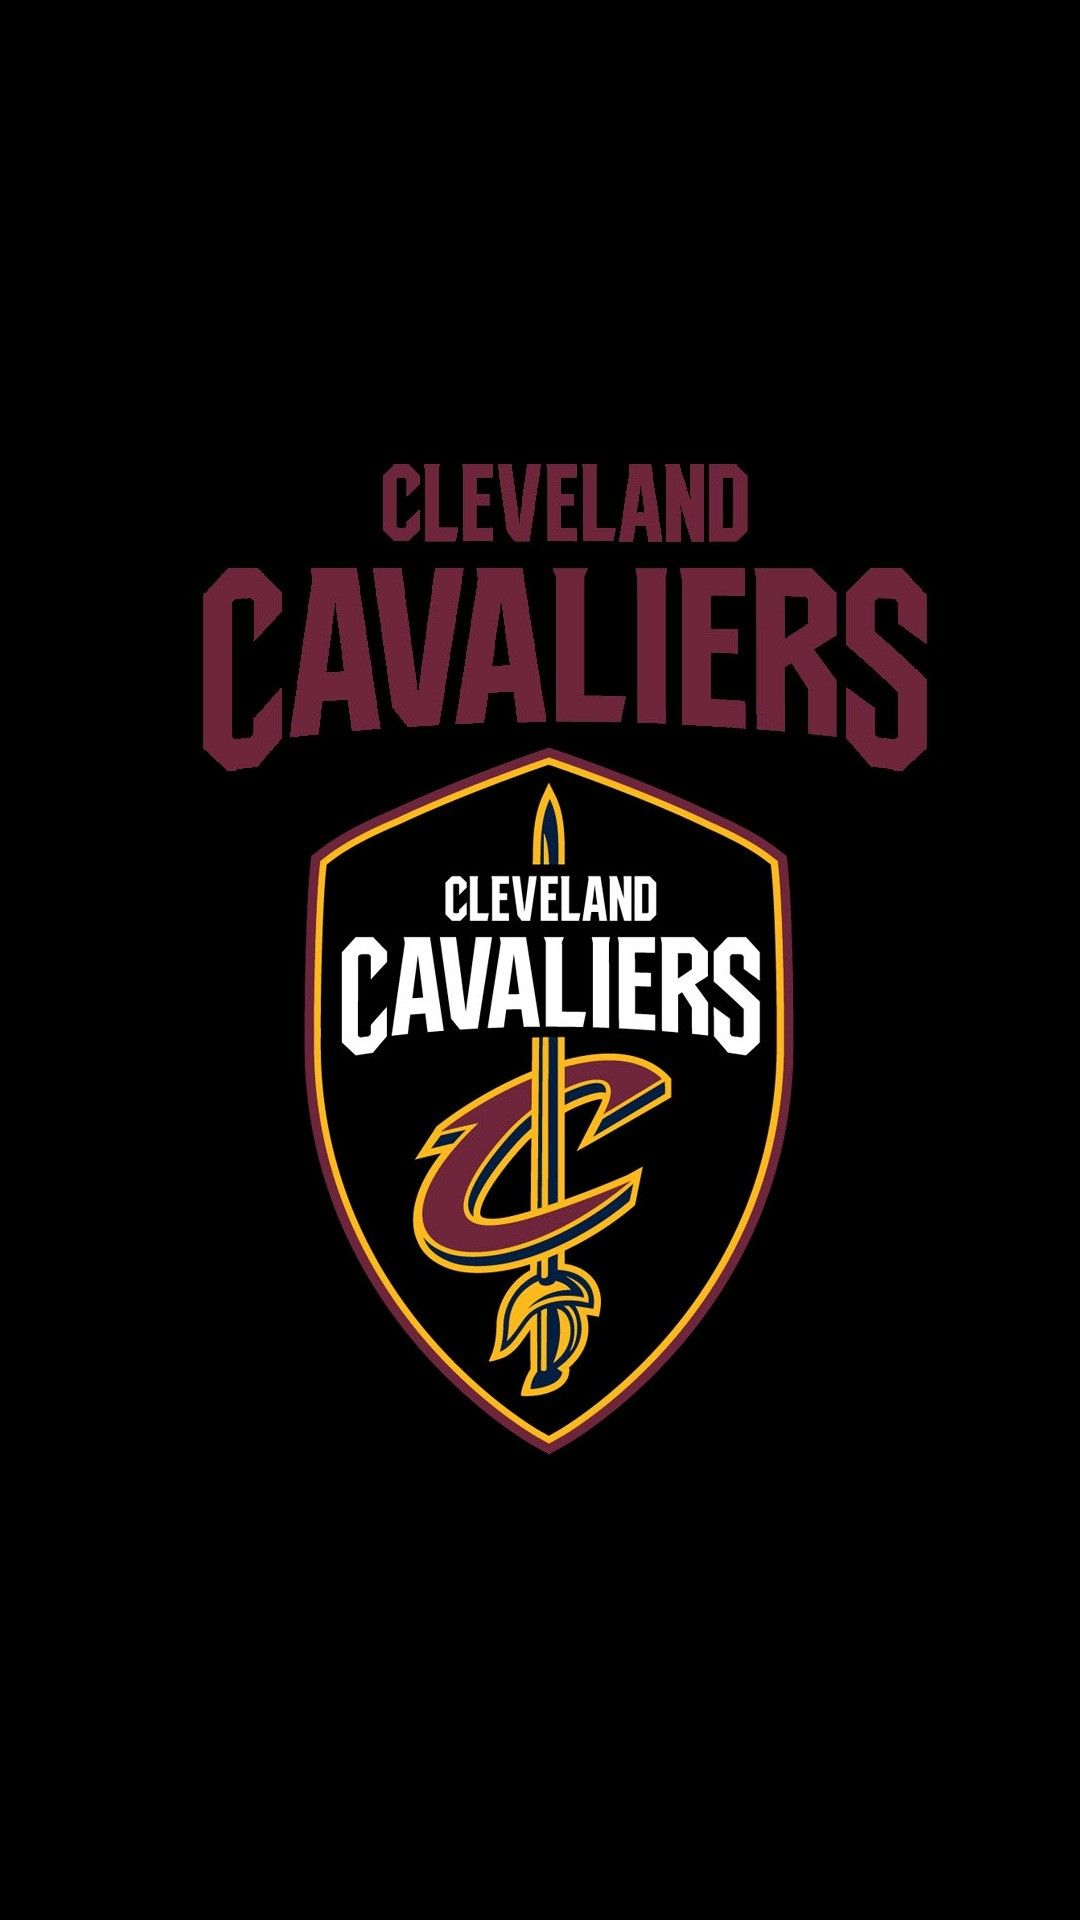 Basketball Wallpaper Best Basketball Wallpapers 2020 Cavaliers Nba Basketball Wallpaper Cavaliers Wallpaper